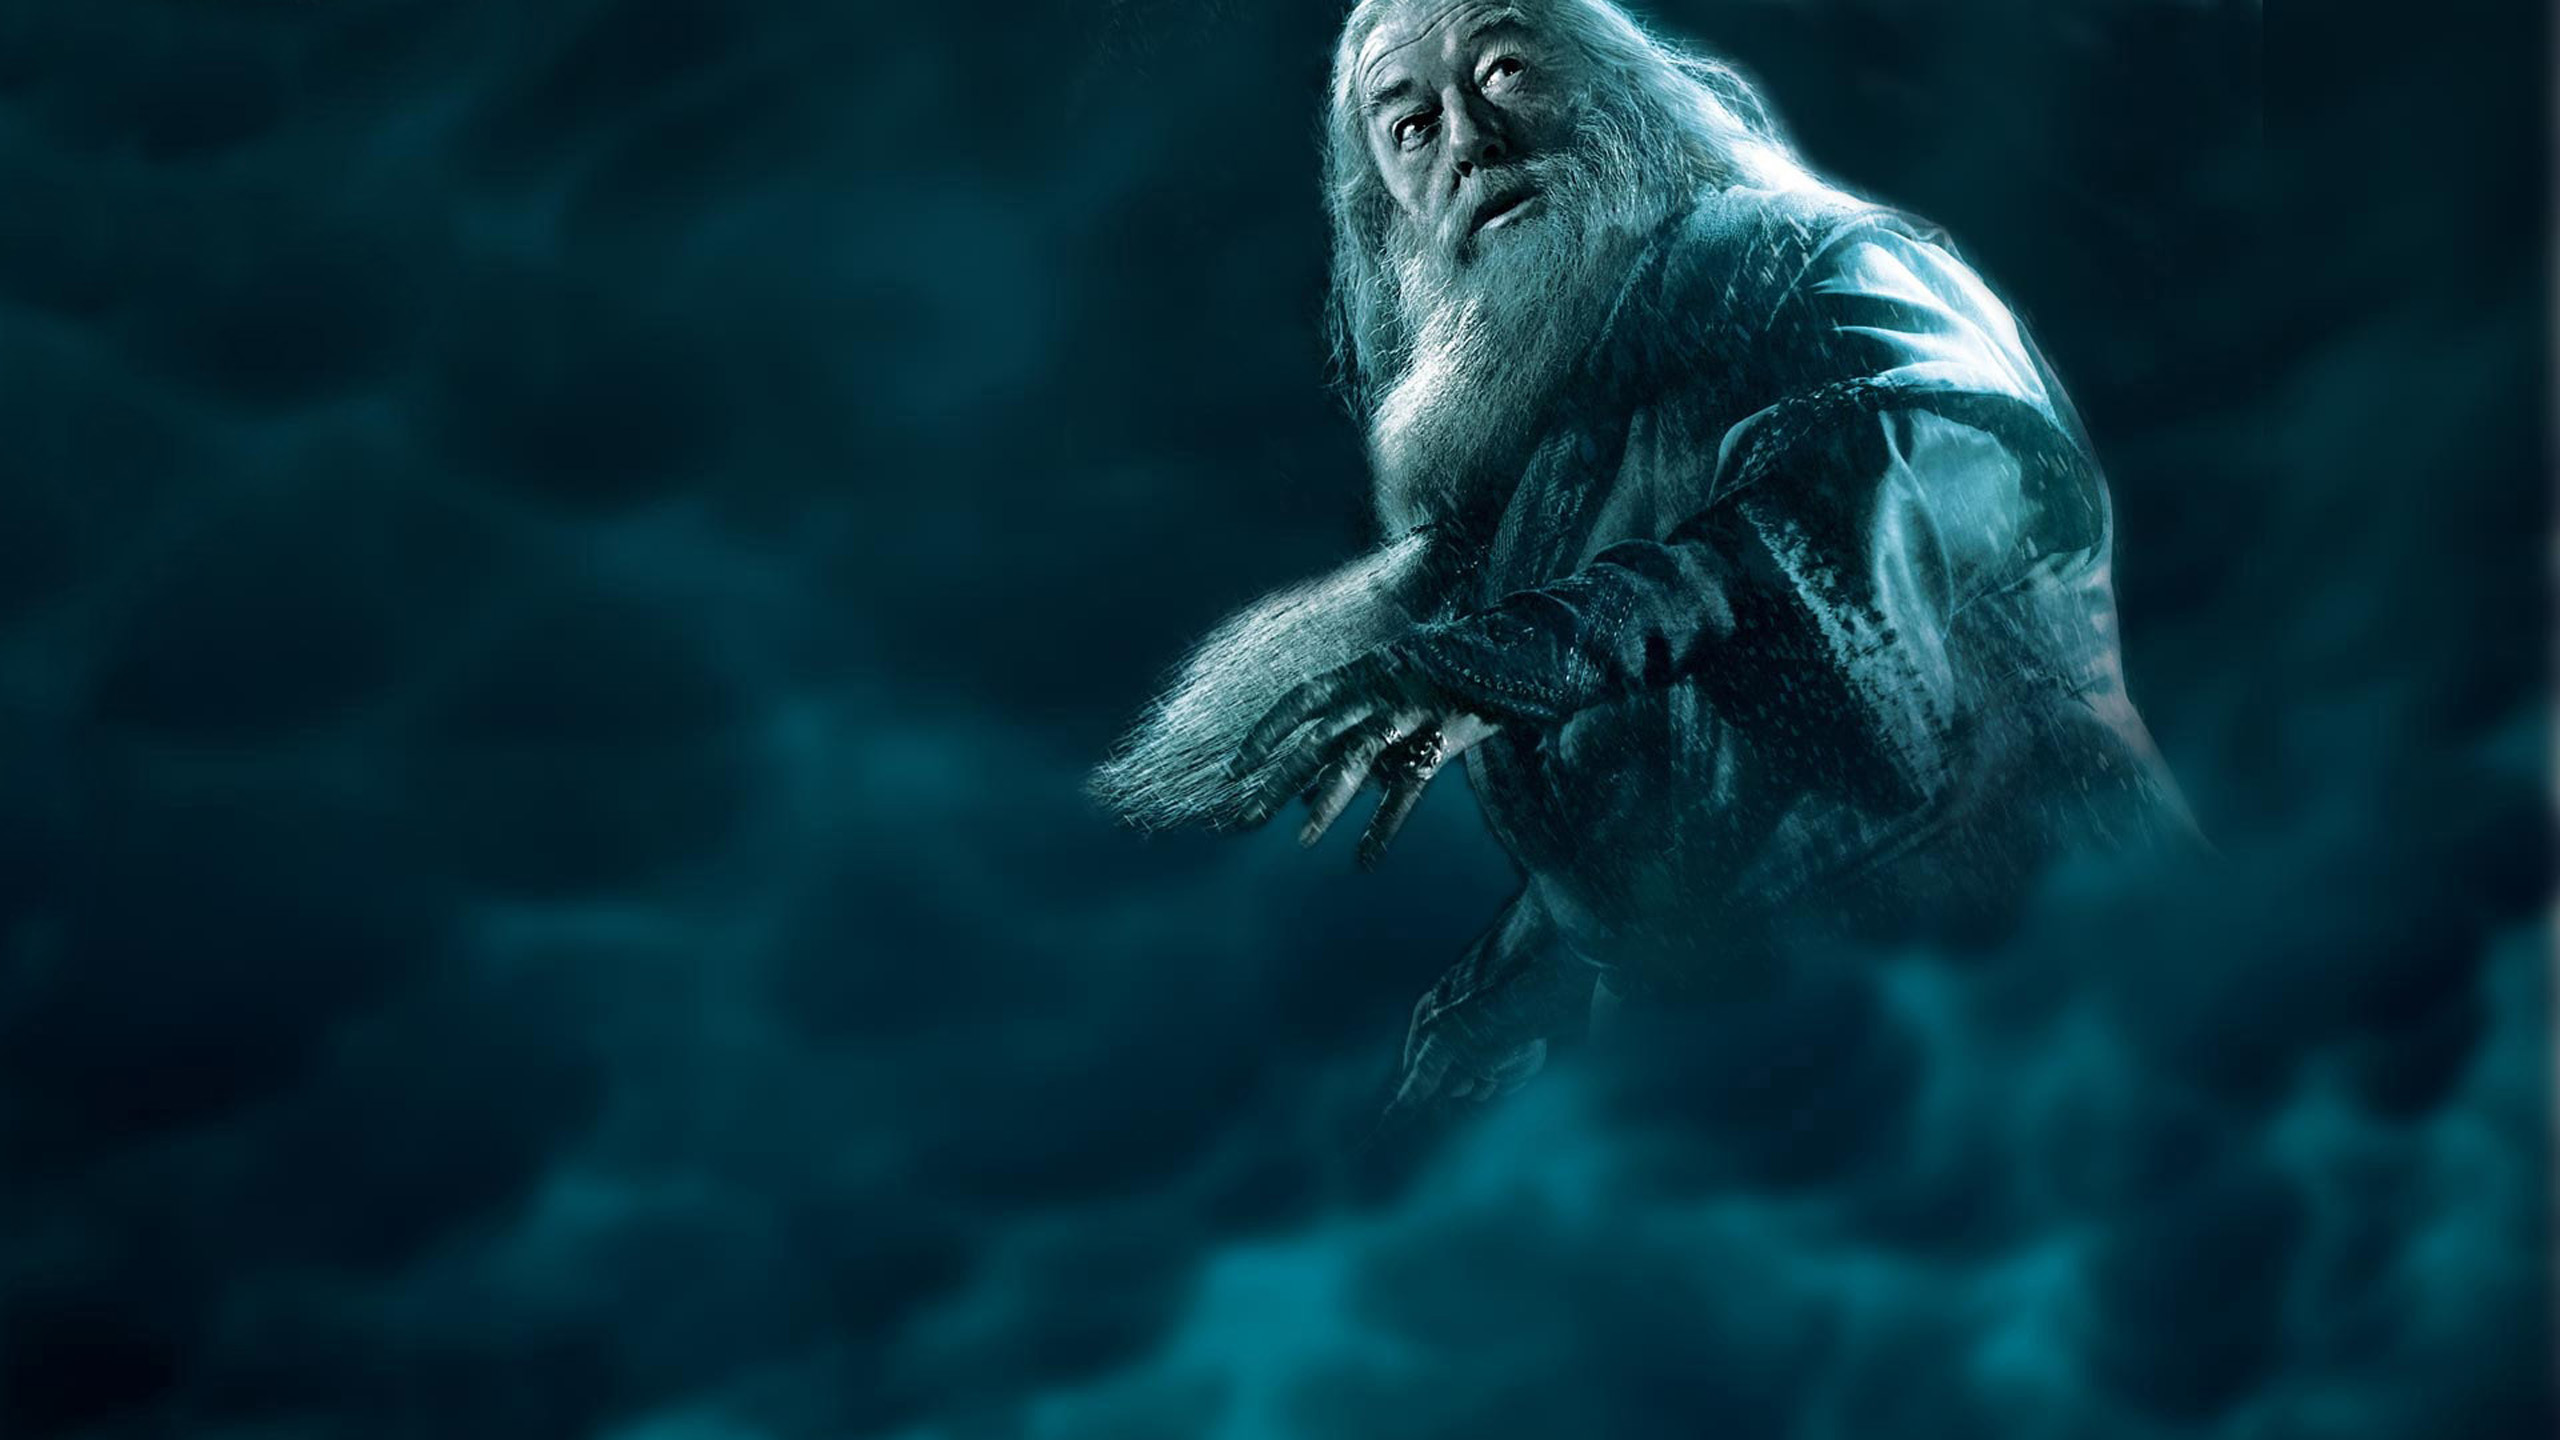 Jets Wallpaper Iphone 146 Harry Potter Movies Giant Widescreen Wallpapers 2560